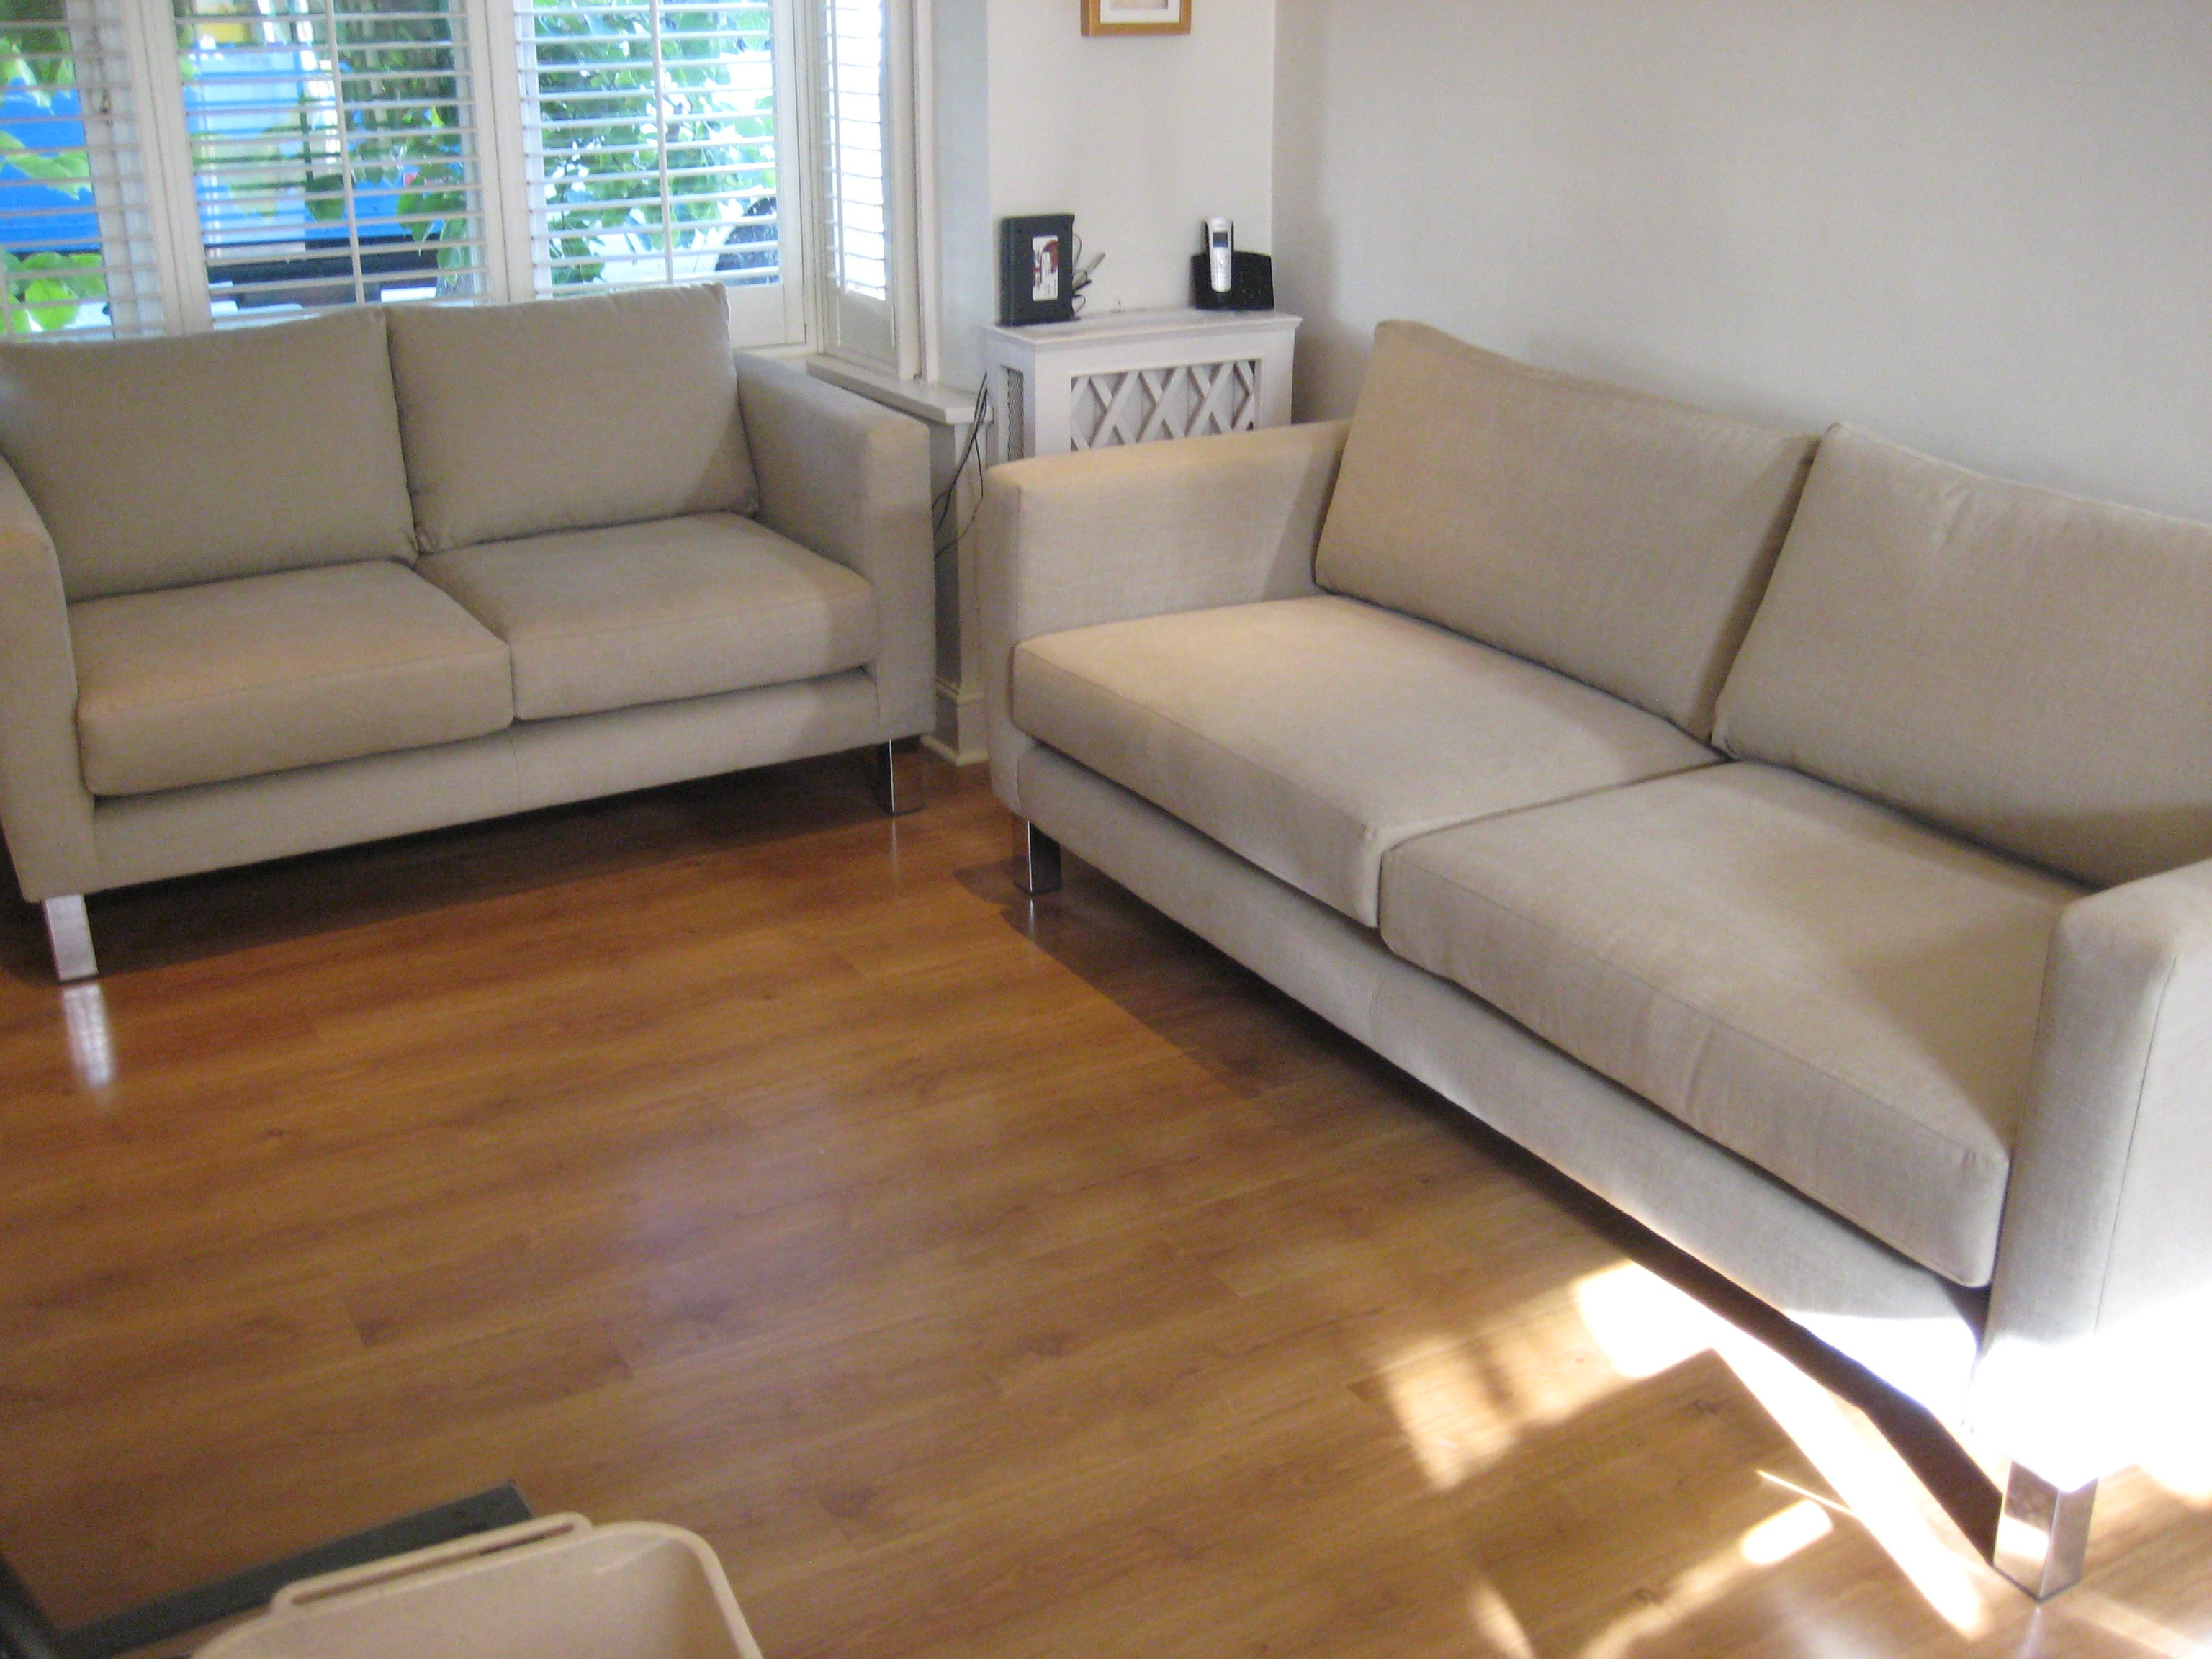 Made To Measure Sofas Both Are Different Sizes Width And Depth